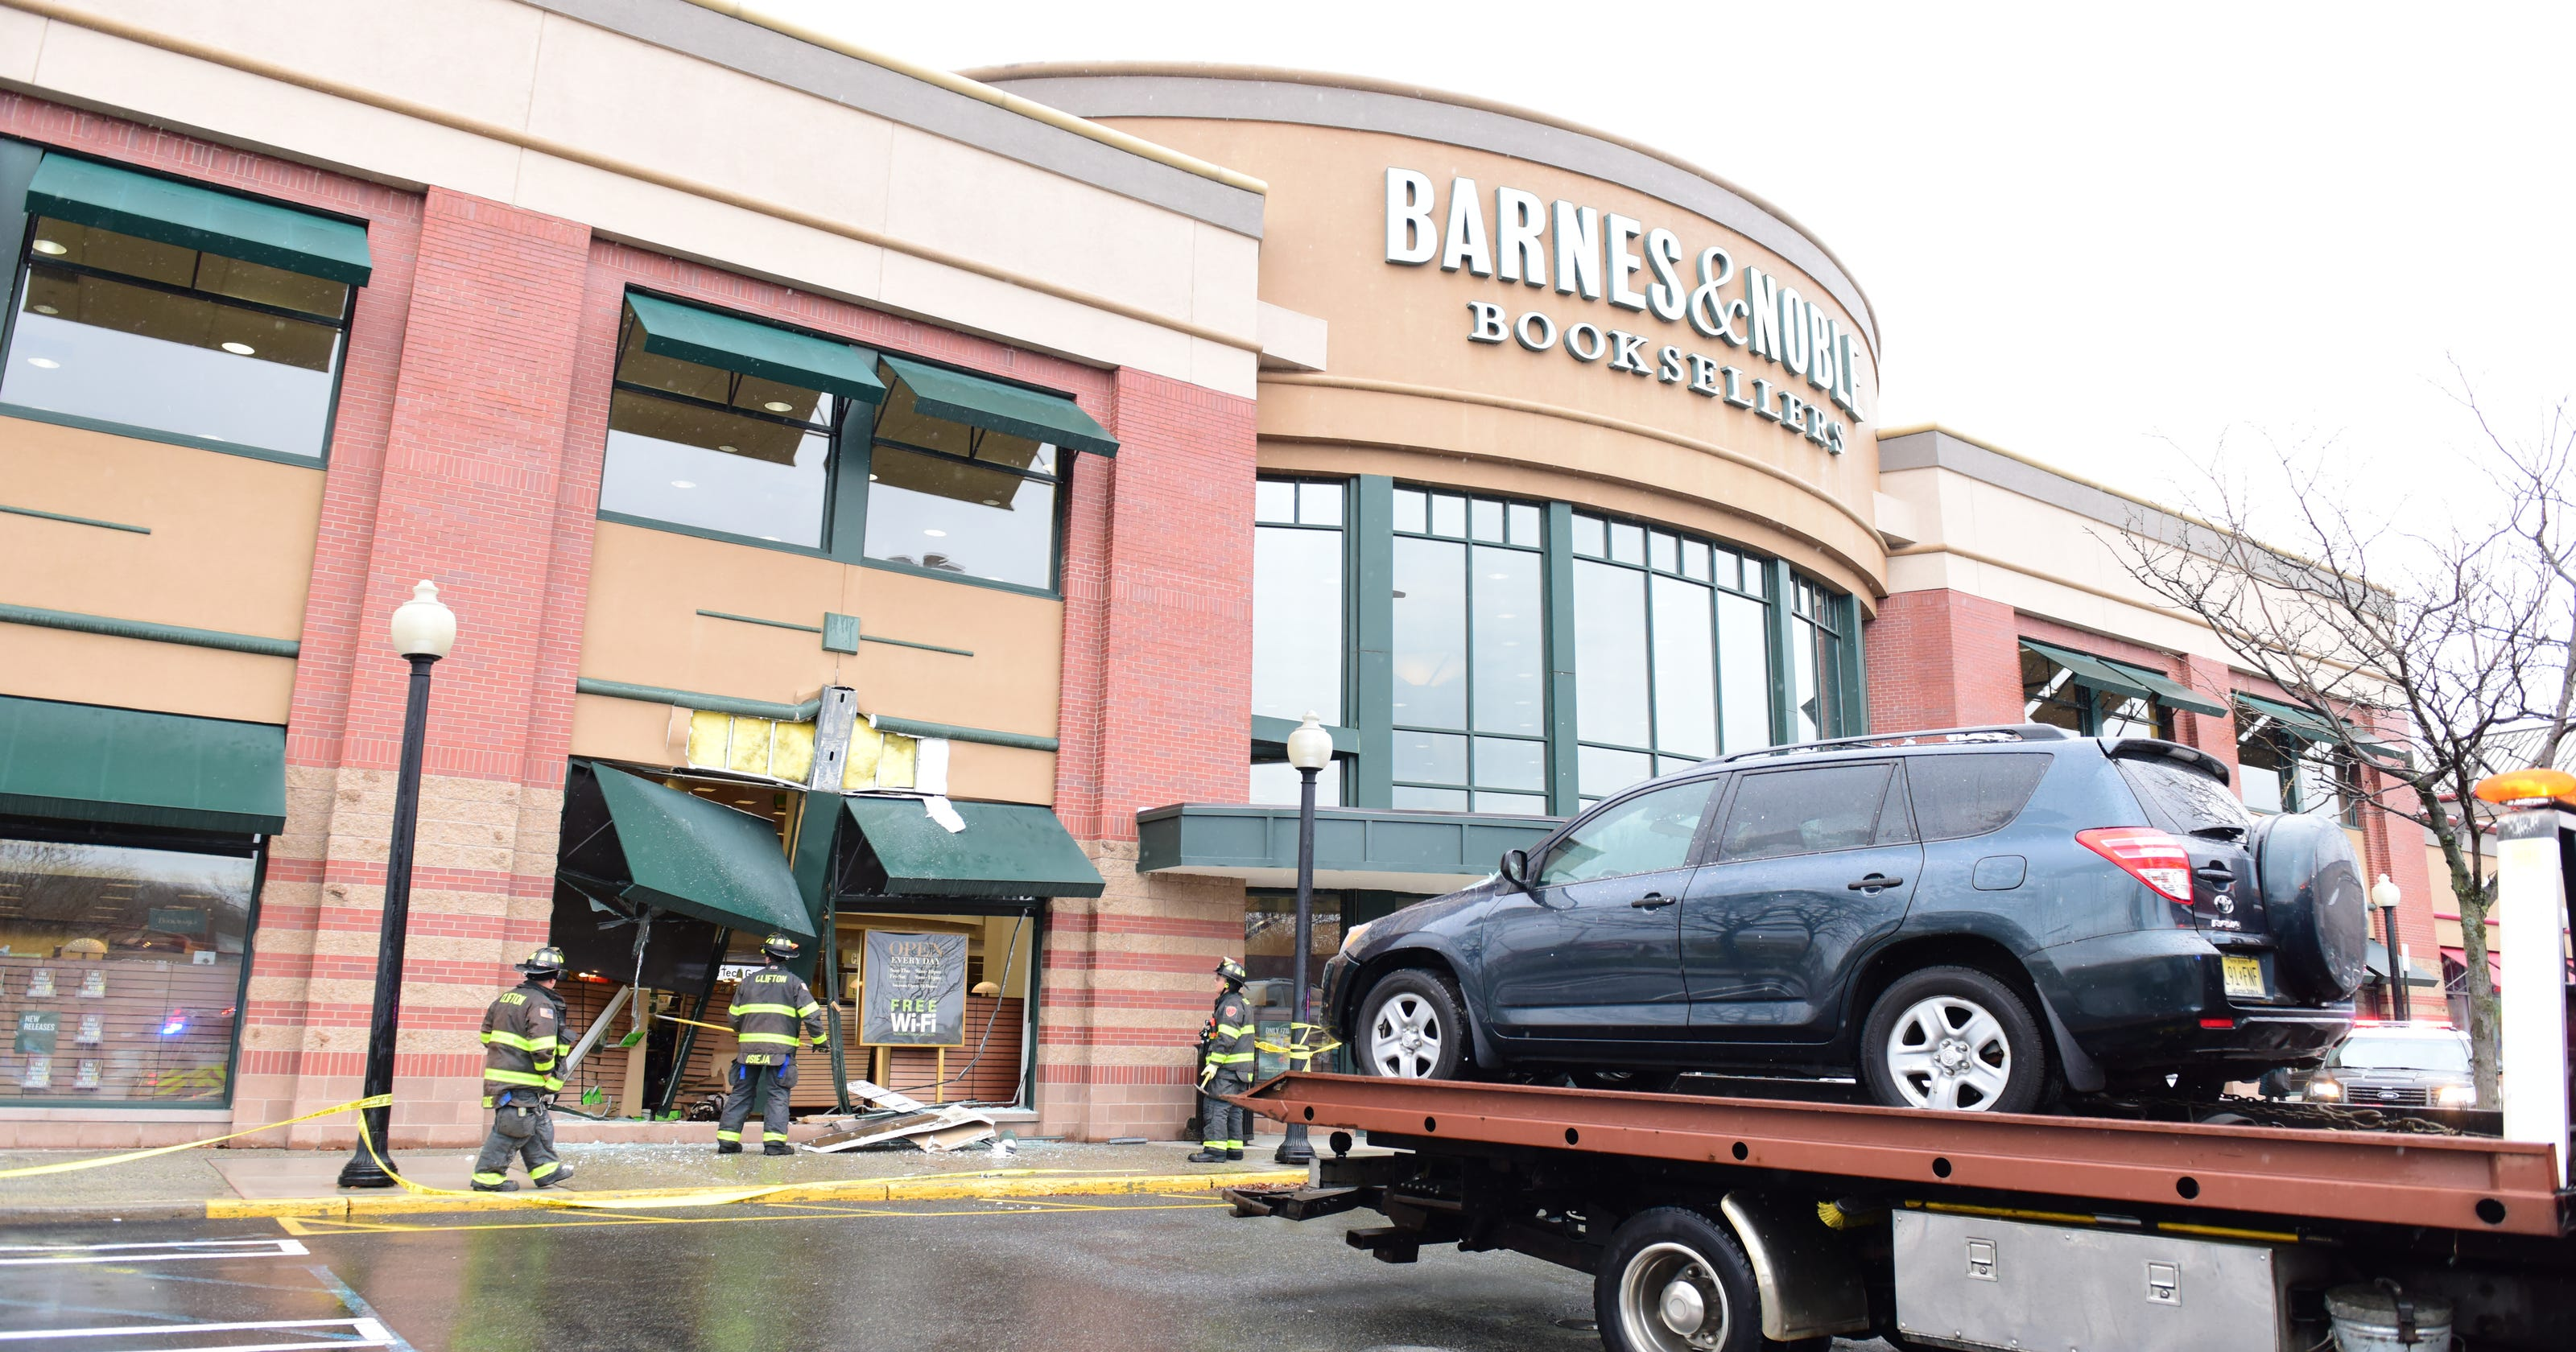 Clifton NJ: Car crashes into Barnes and Noble bookstore on ...